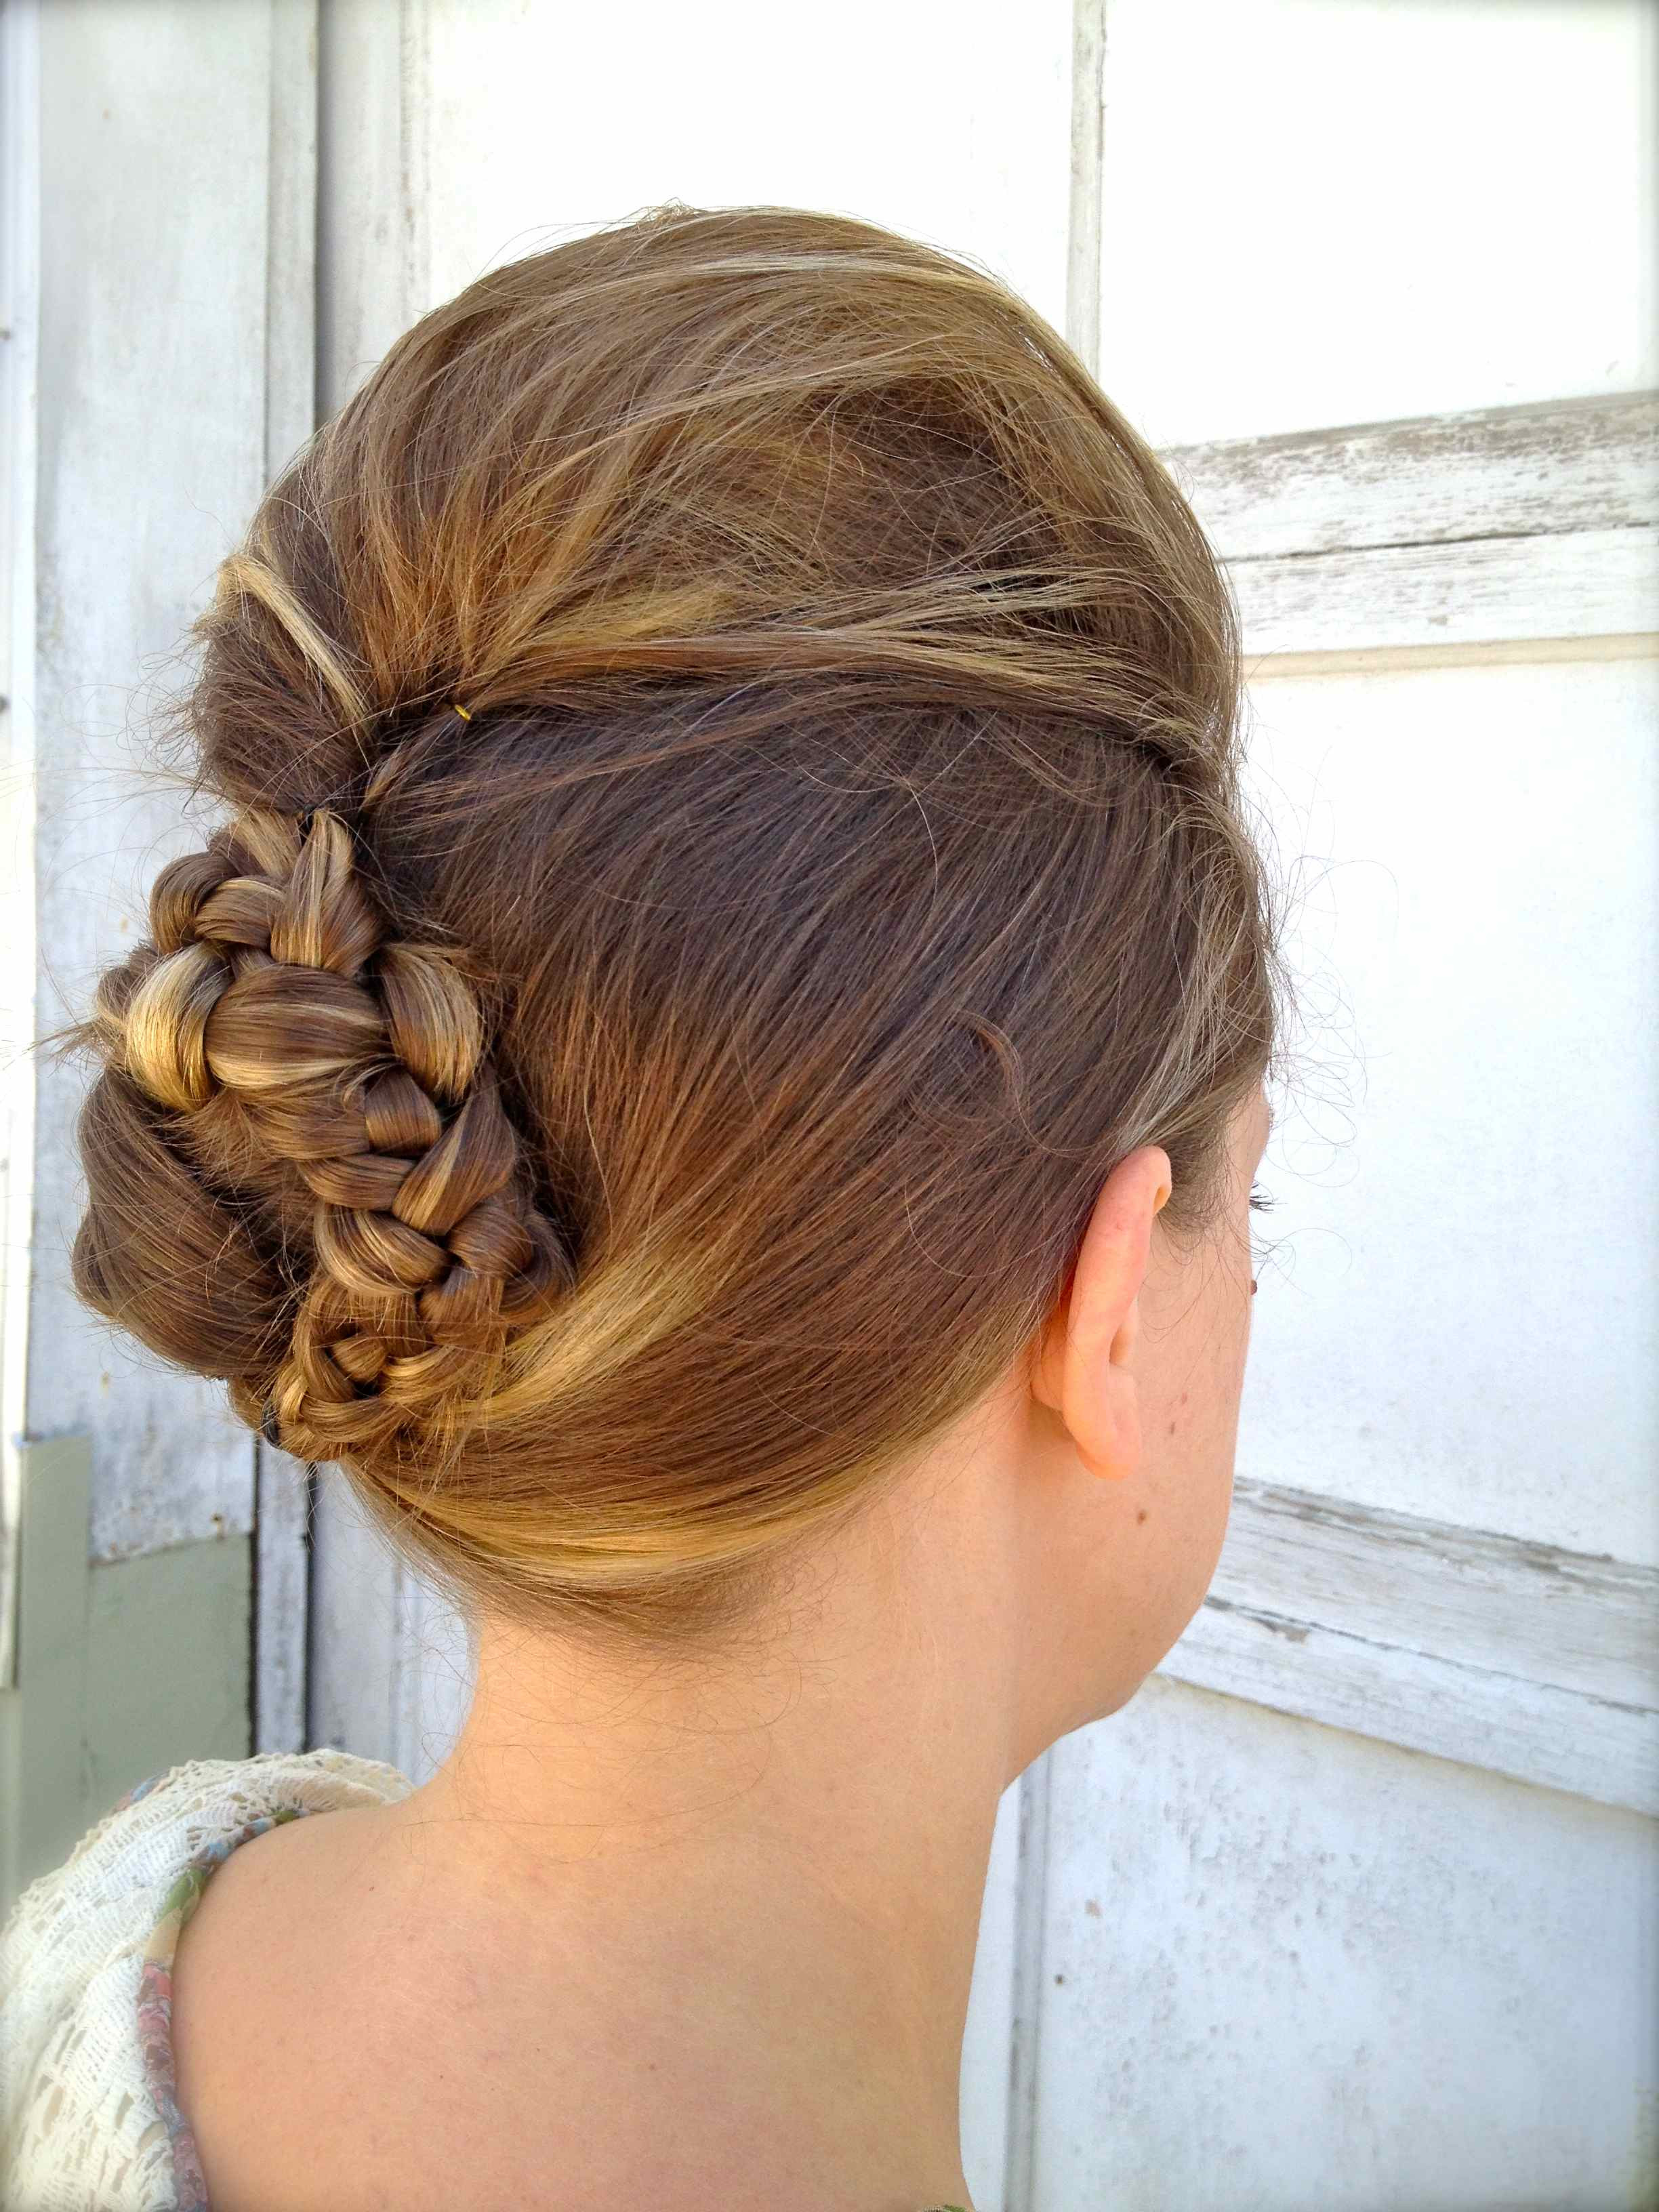 Best ideas about DIY Haircuts For Short Hair . Save or Pin 20 Diy Hairstyles Short Curly Vintage Hair MagMent Now.